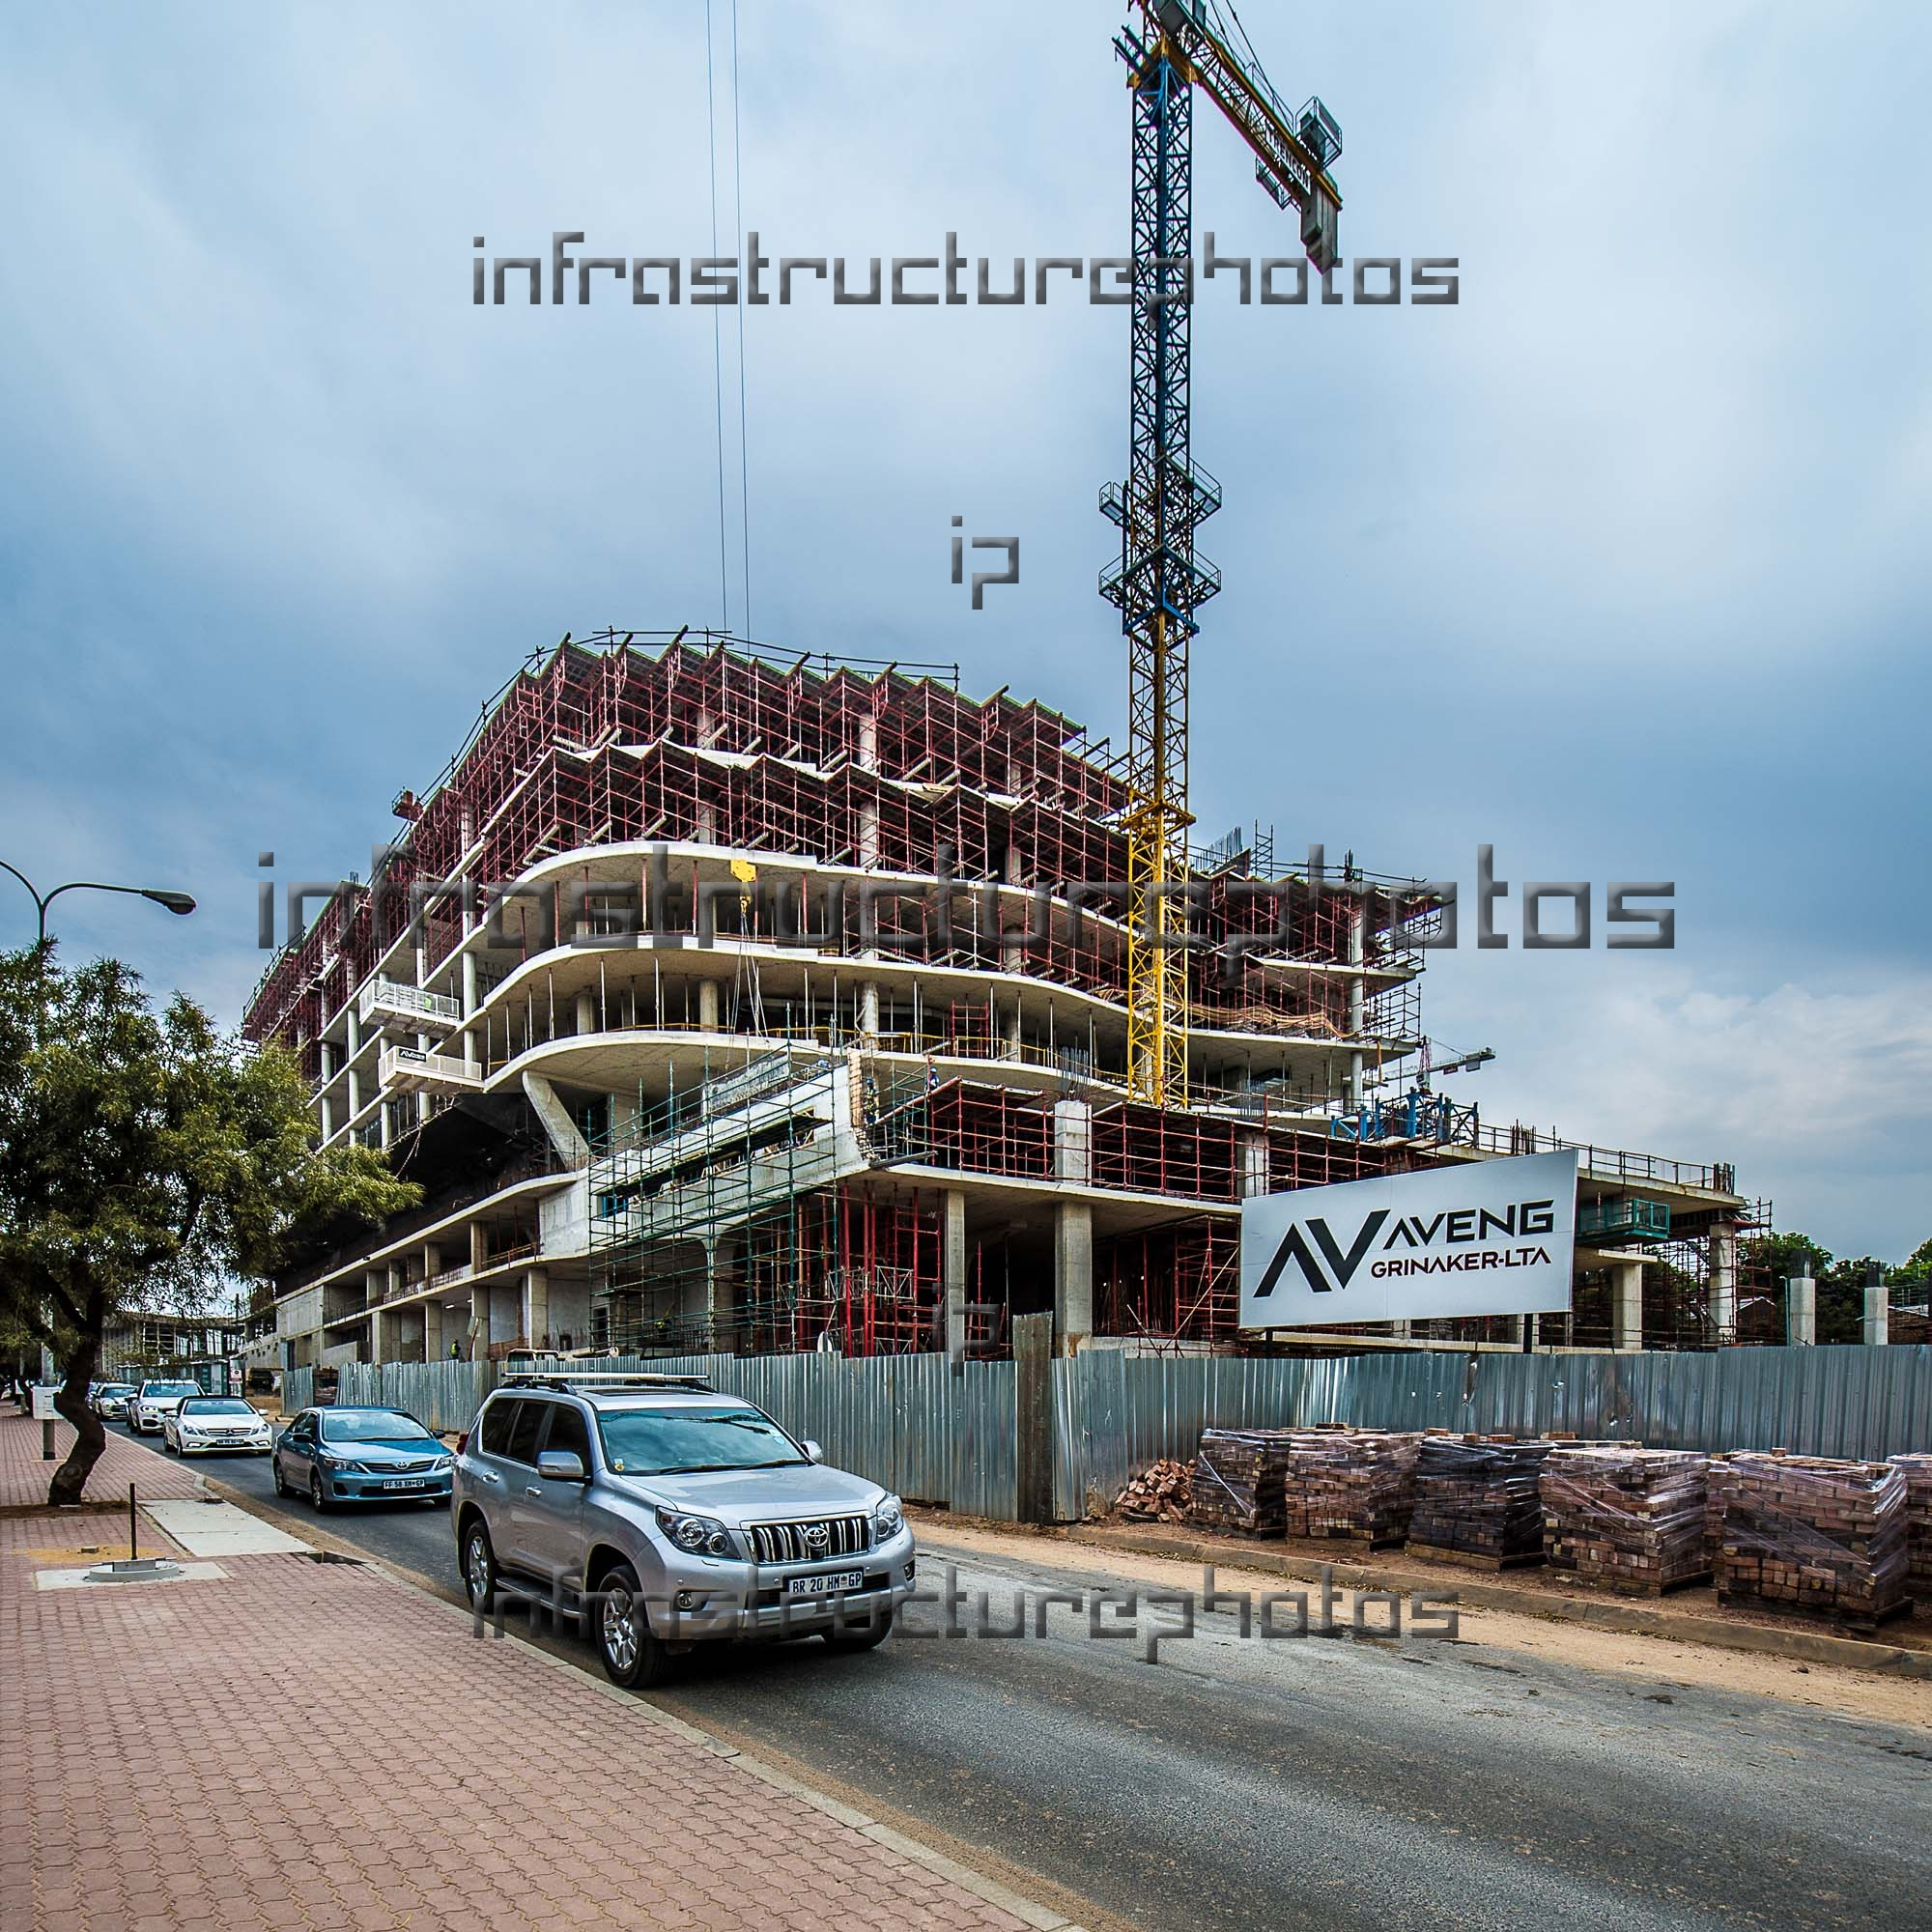 Old Mutual Emerging Markets West Road Sandton